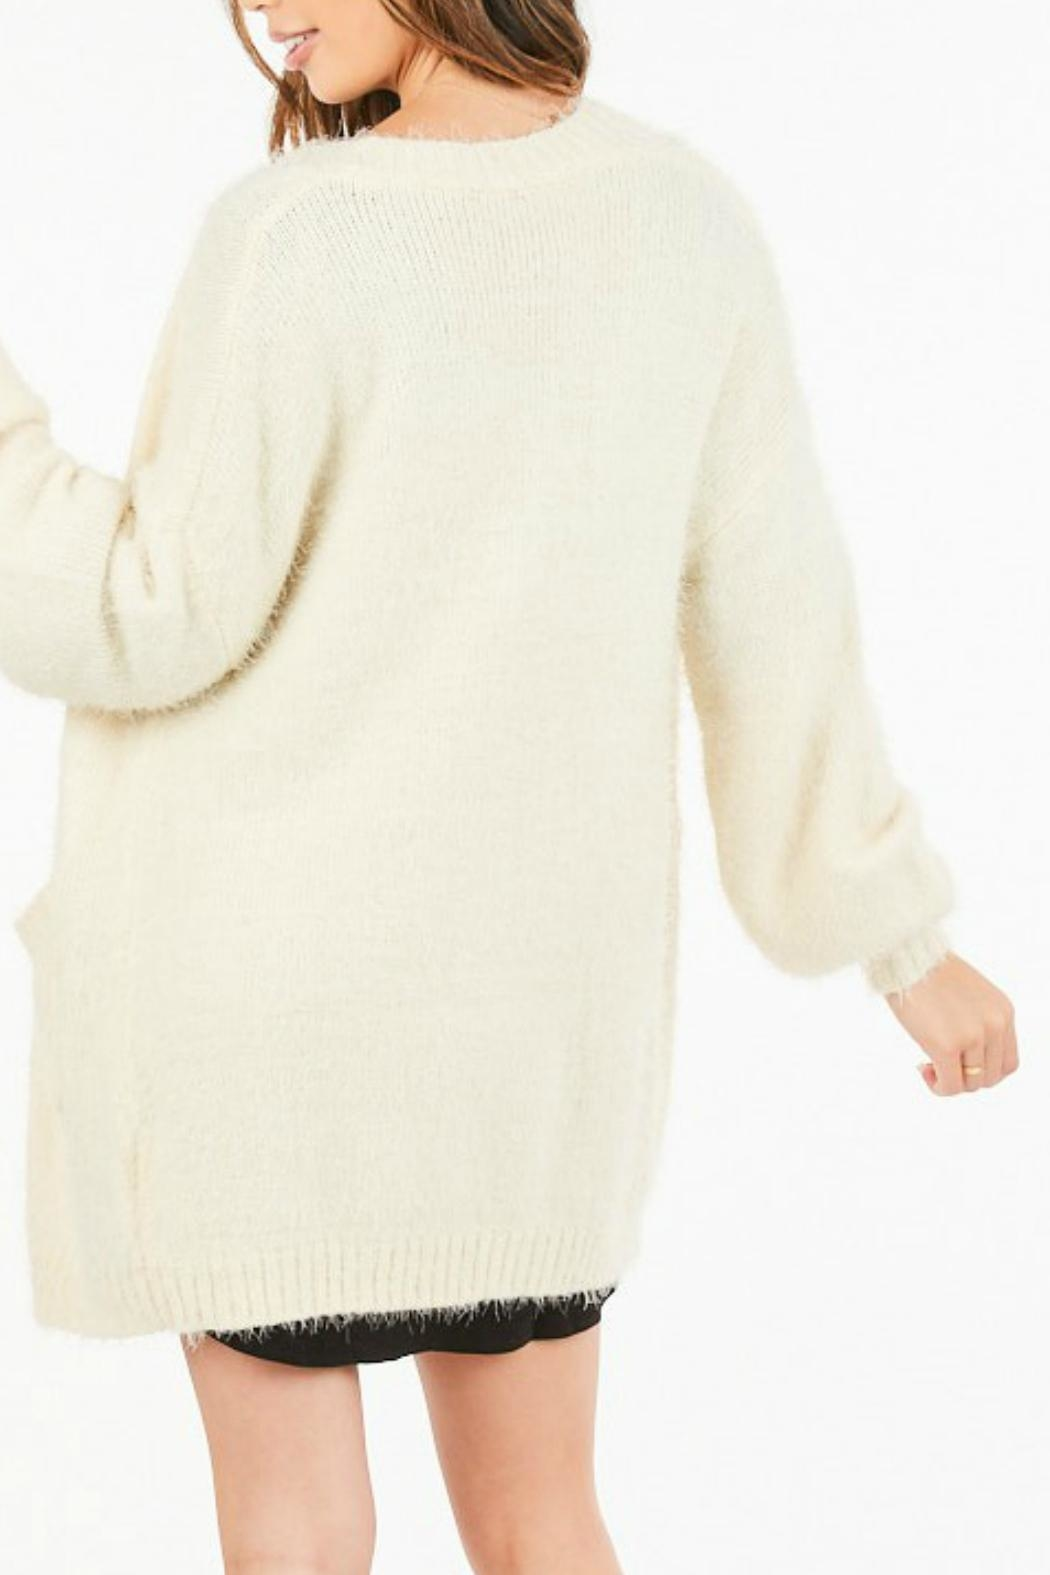 Very J Fuzzy Knit Cardigan - Front Full Image